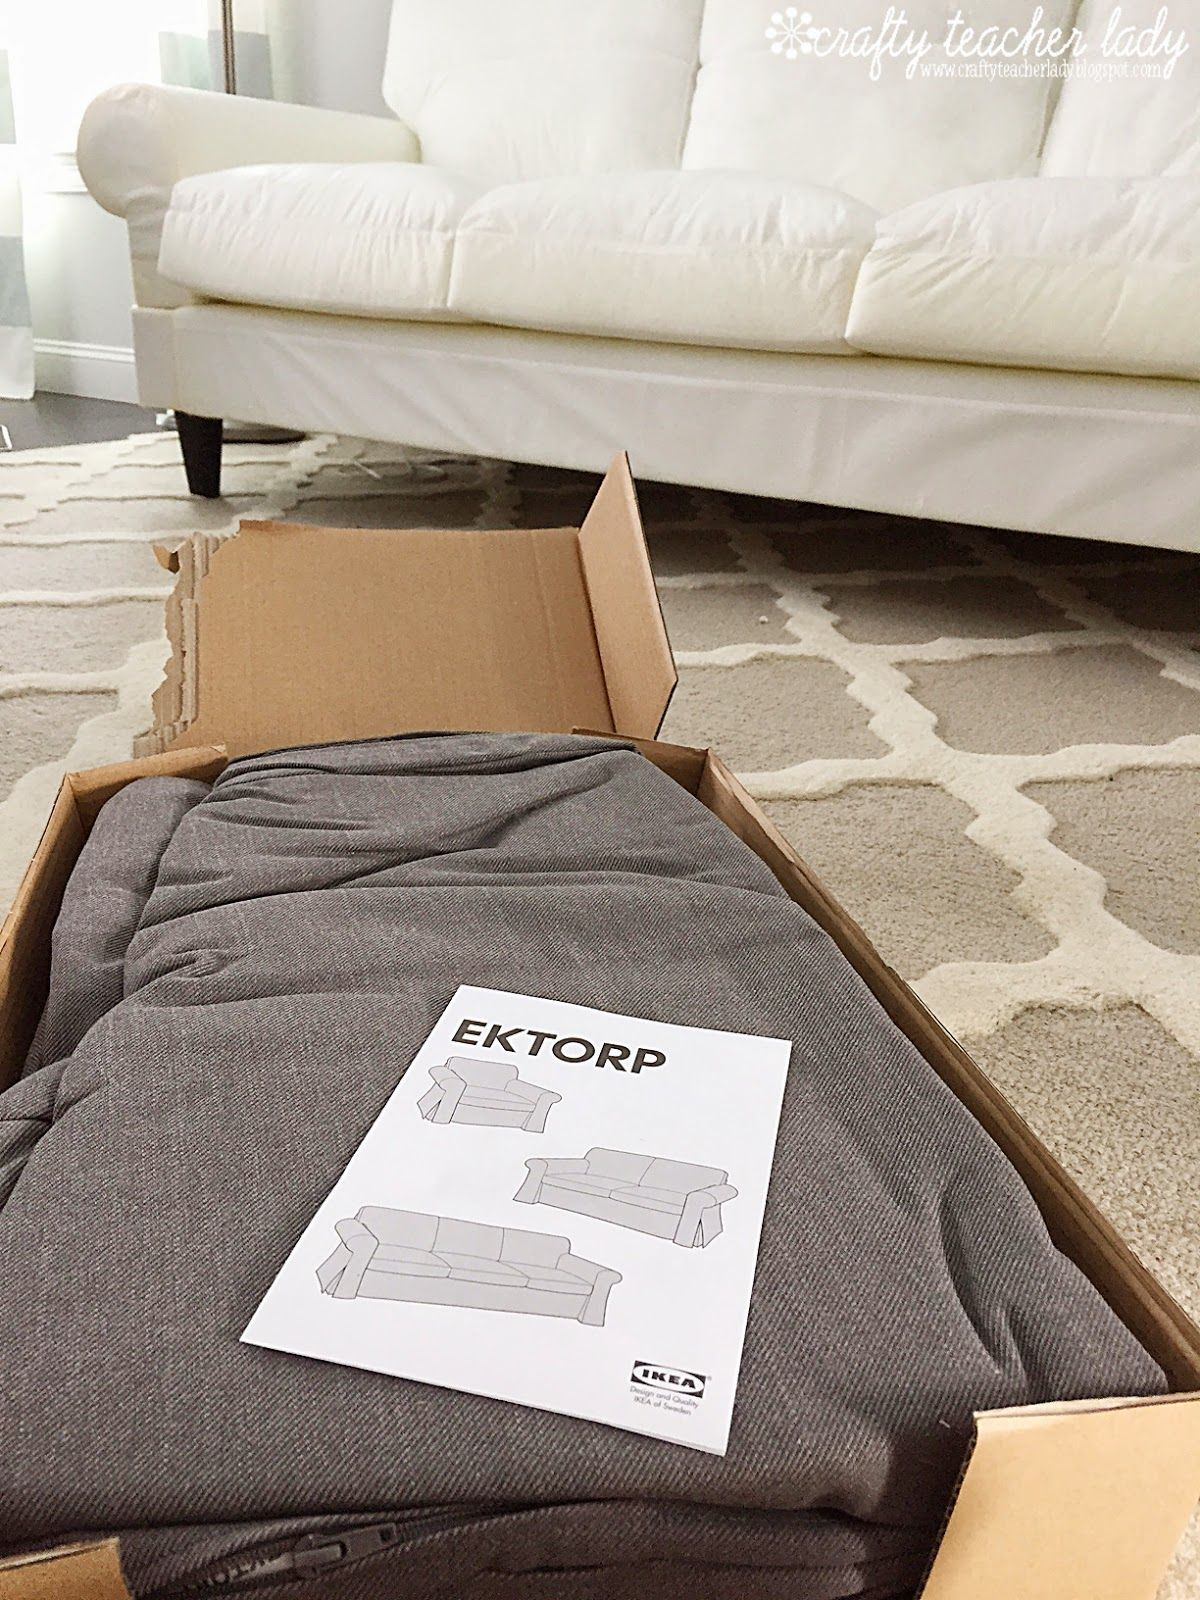 Crafty Teacher Lady: Review Of The IKEA Ektorp Sofa Series